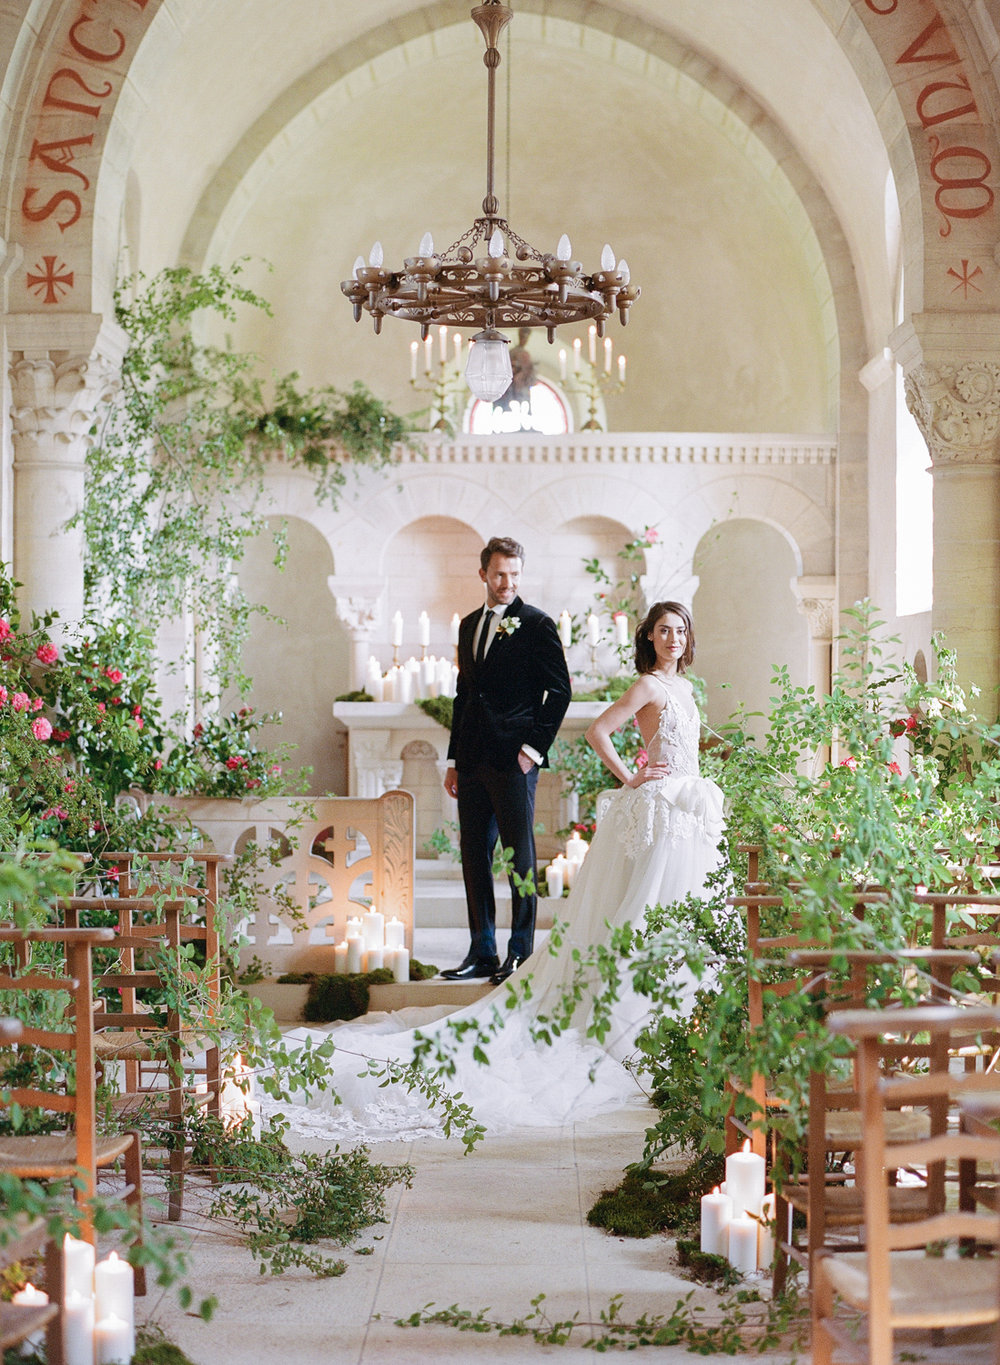 A wedding ceremony in a chapel at Chateau de Varennes; Sylvie Gil Photography